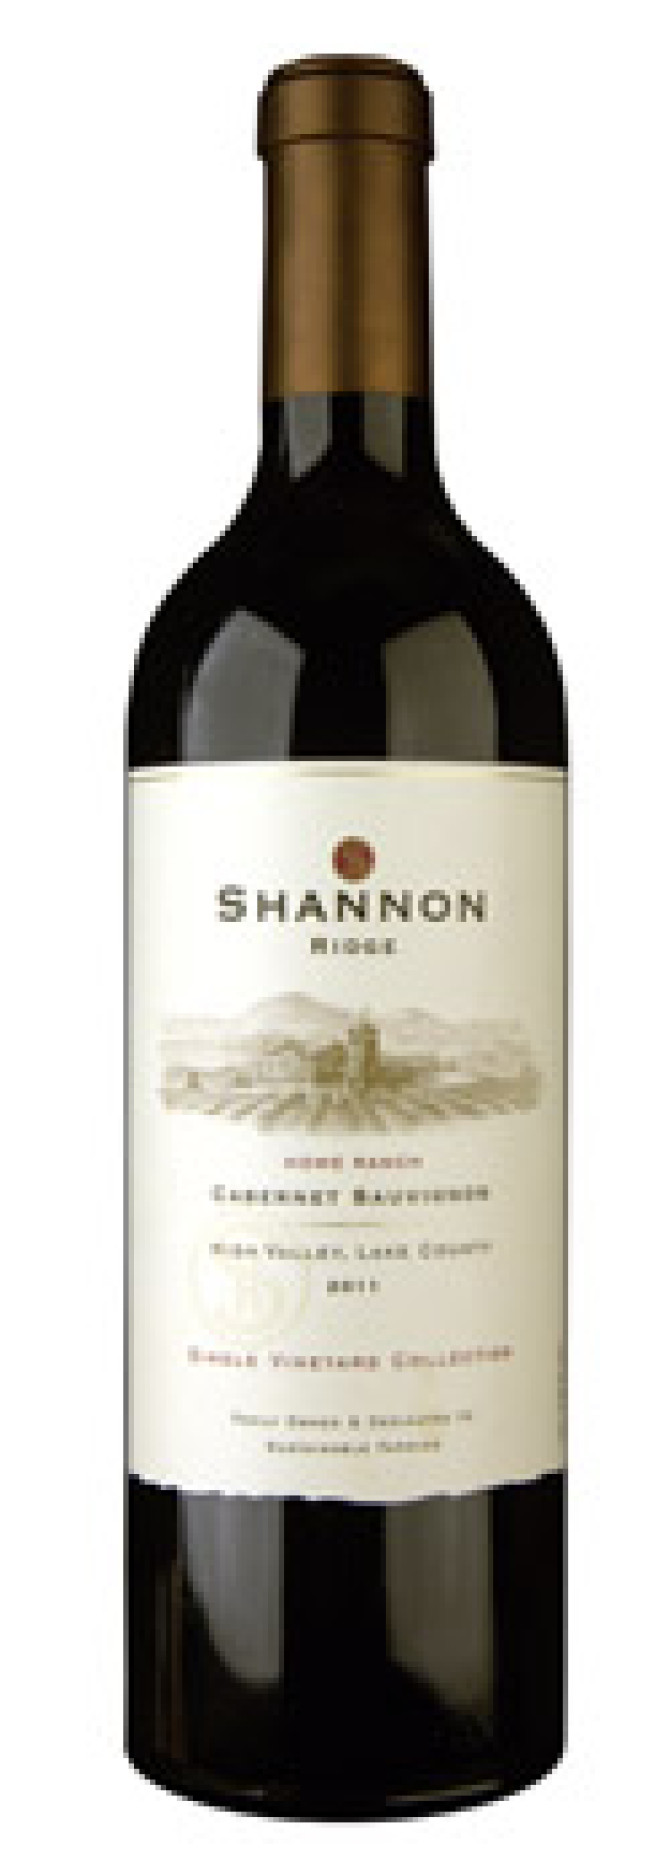 shannon-ridge-cabernet-sauvignon-home-ranch